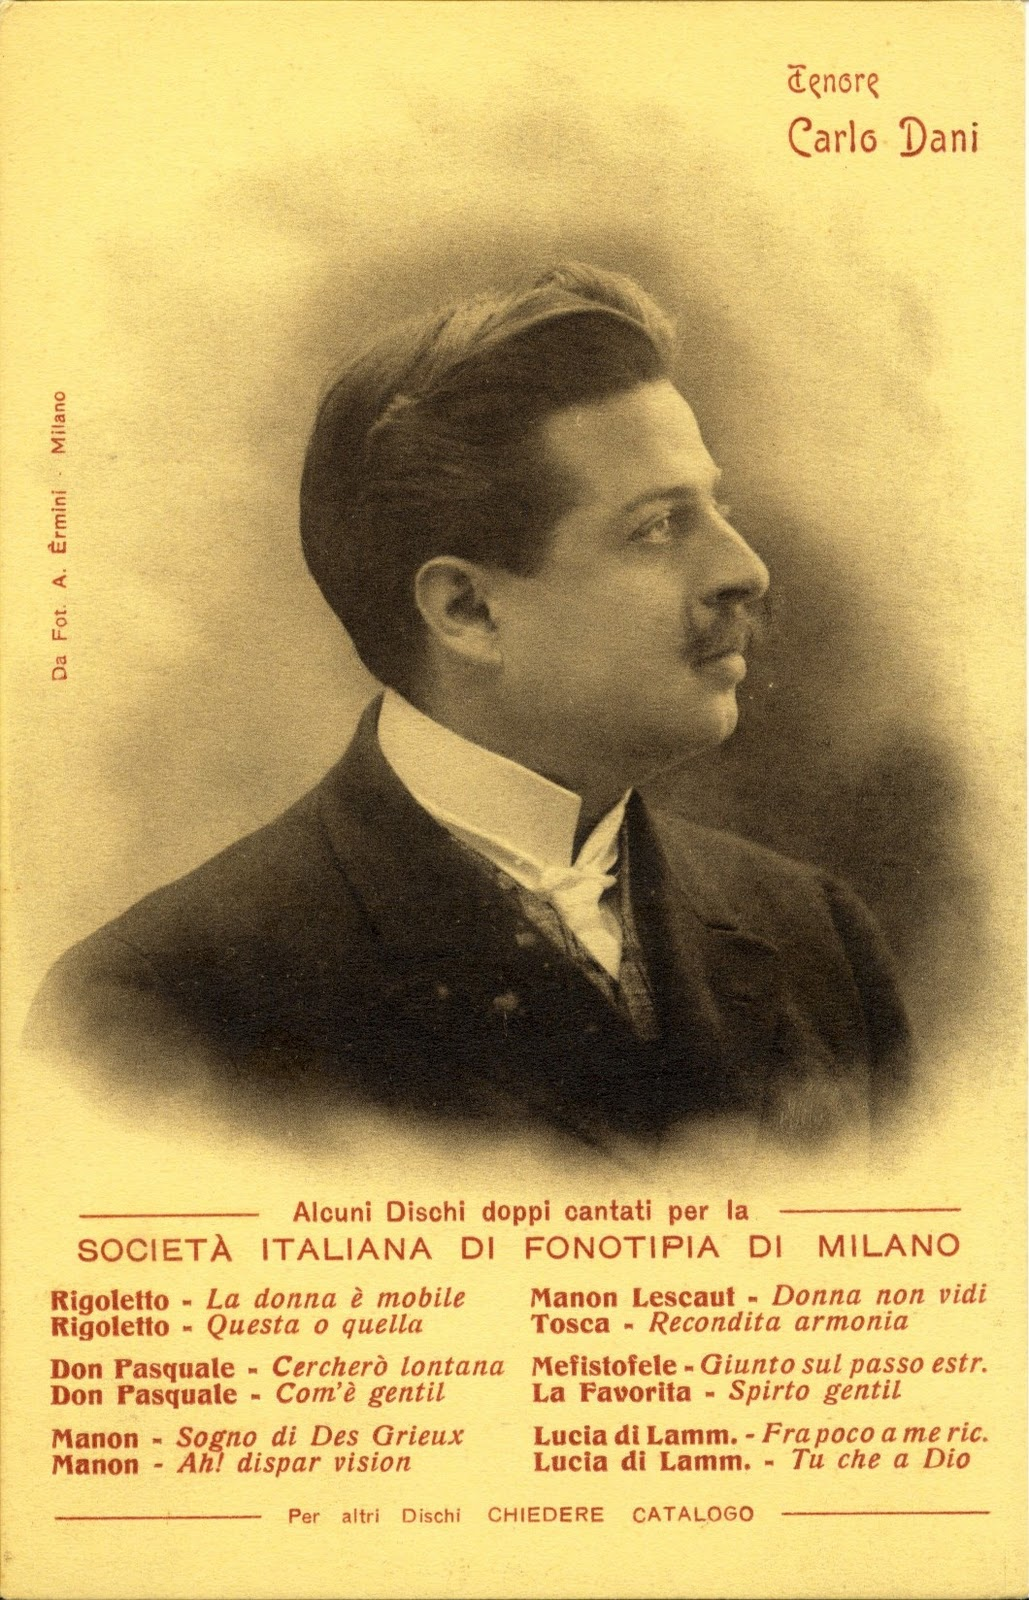 ITALIAN TENOR CARLO DANI (1873-1944) CD